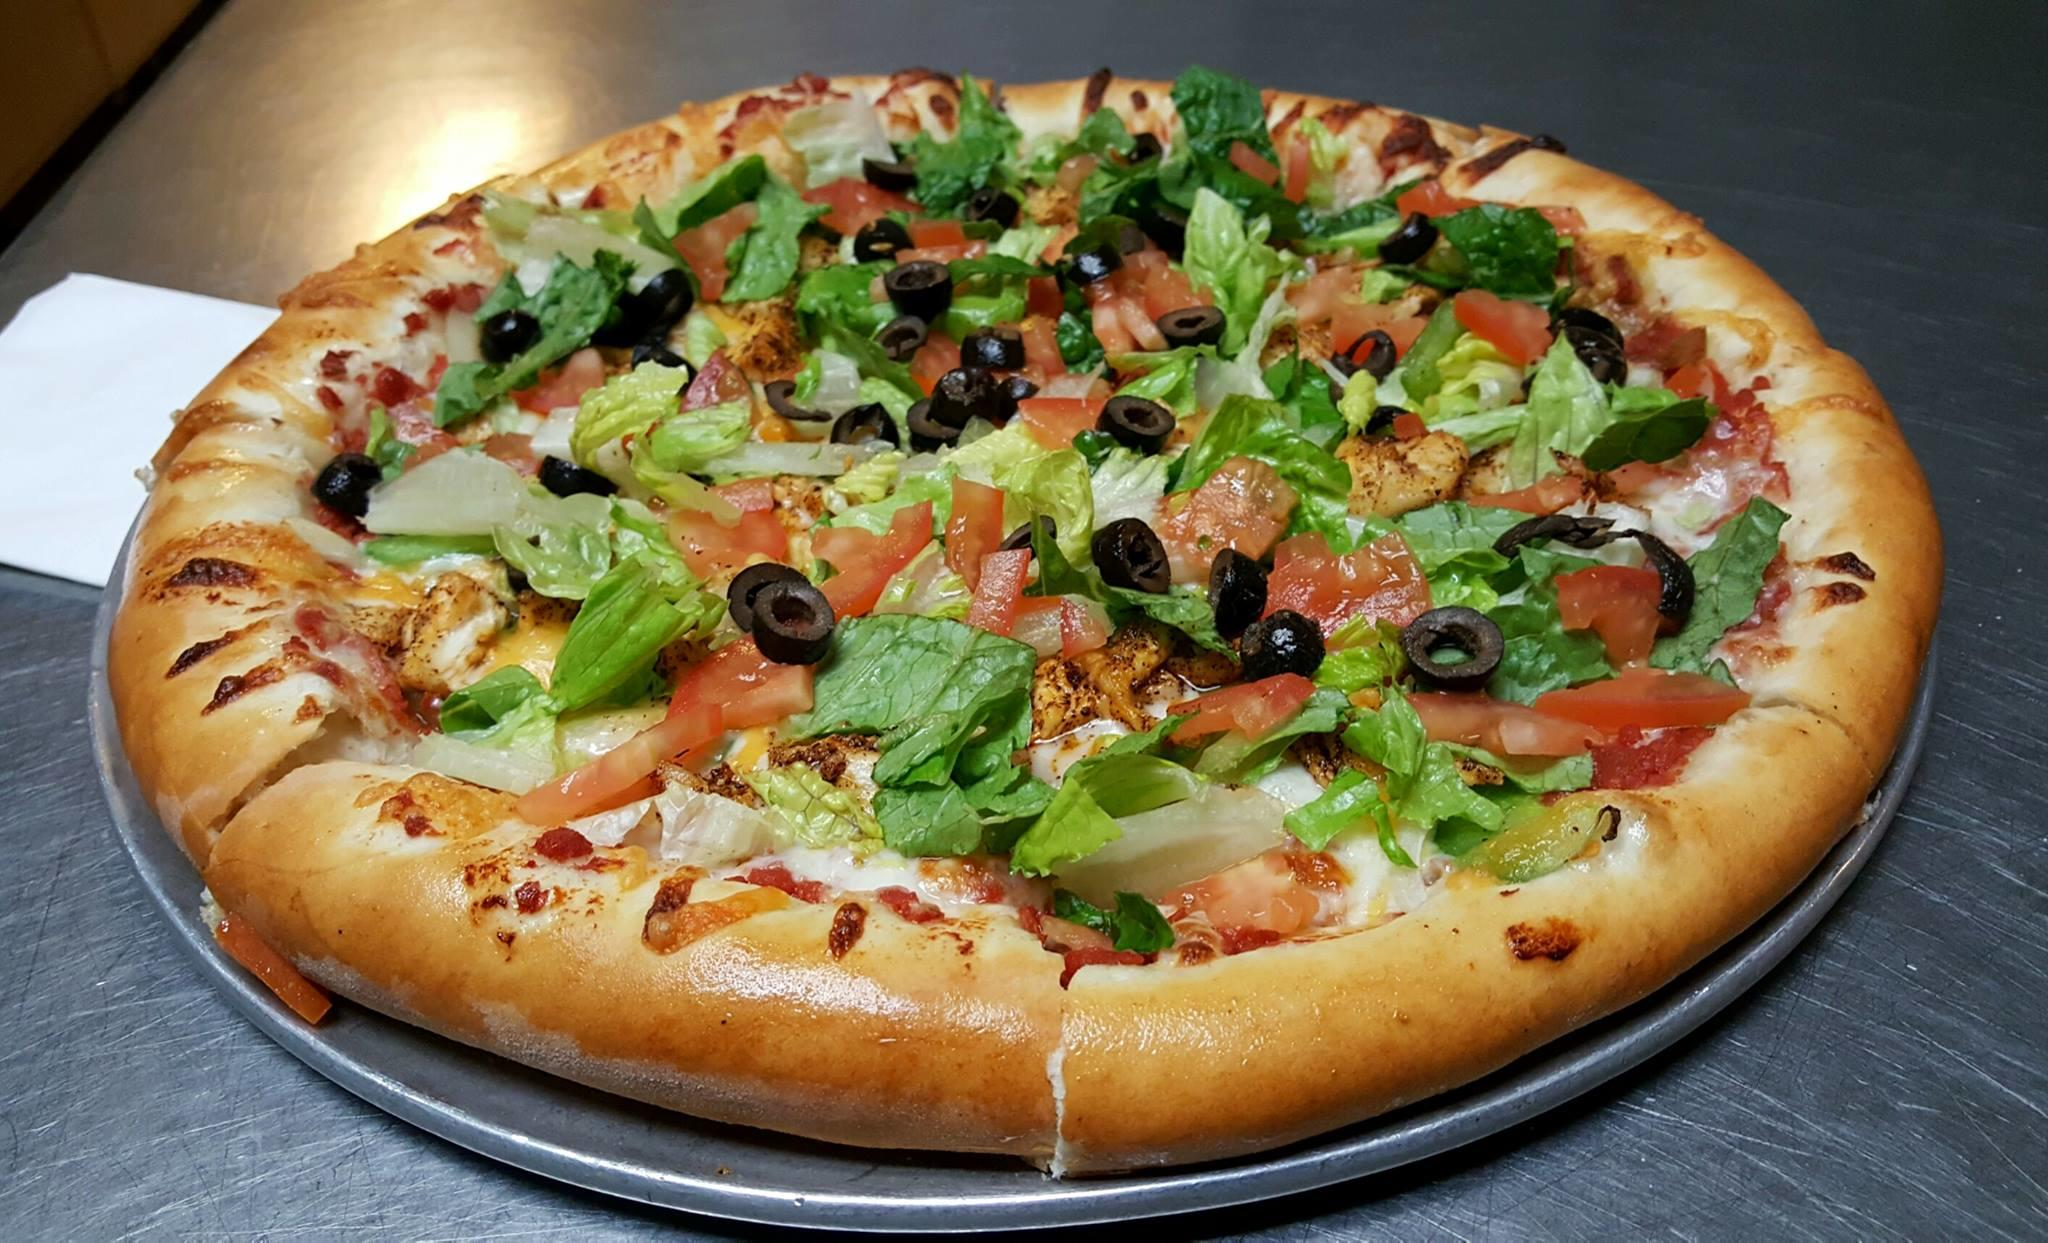 Delivery Food In Laramie Wyoming